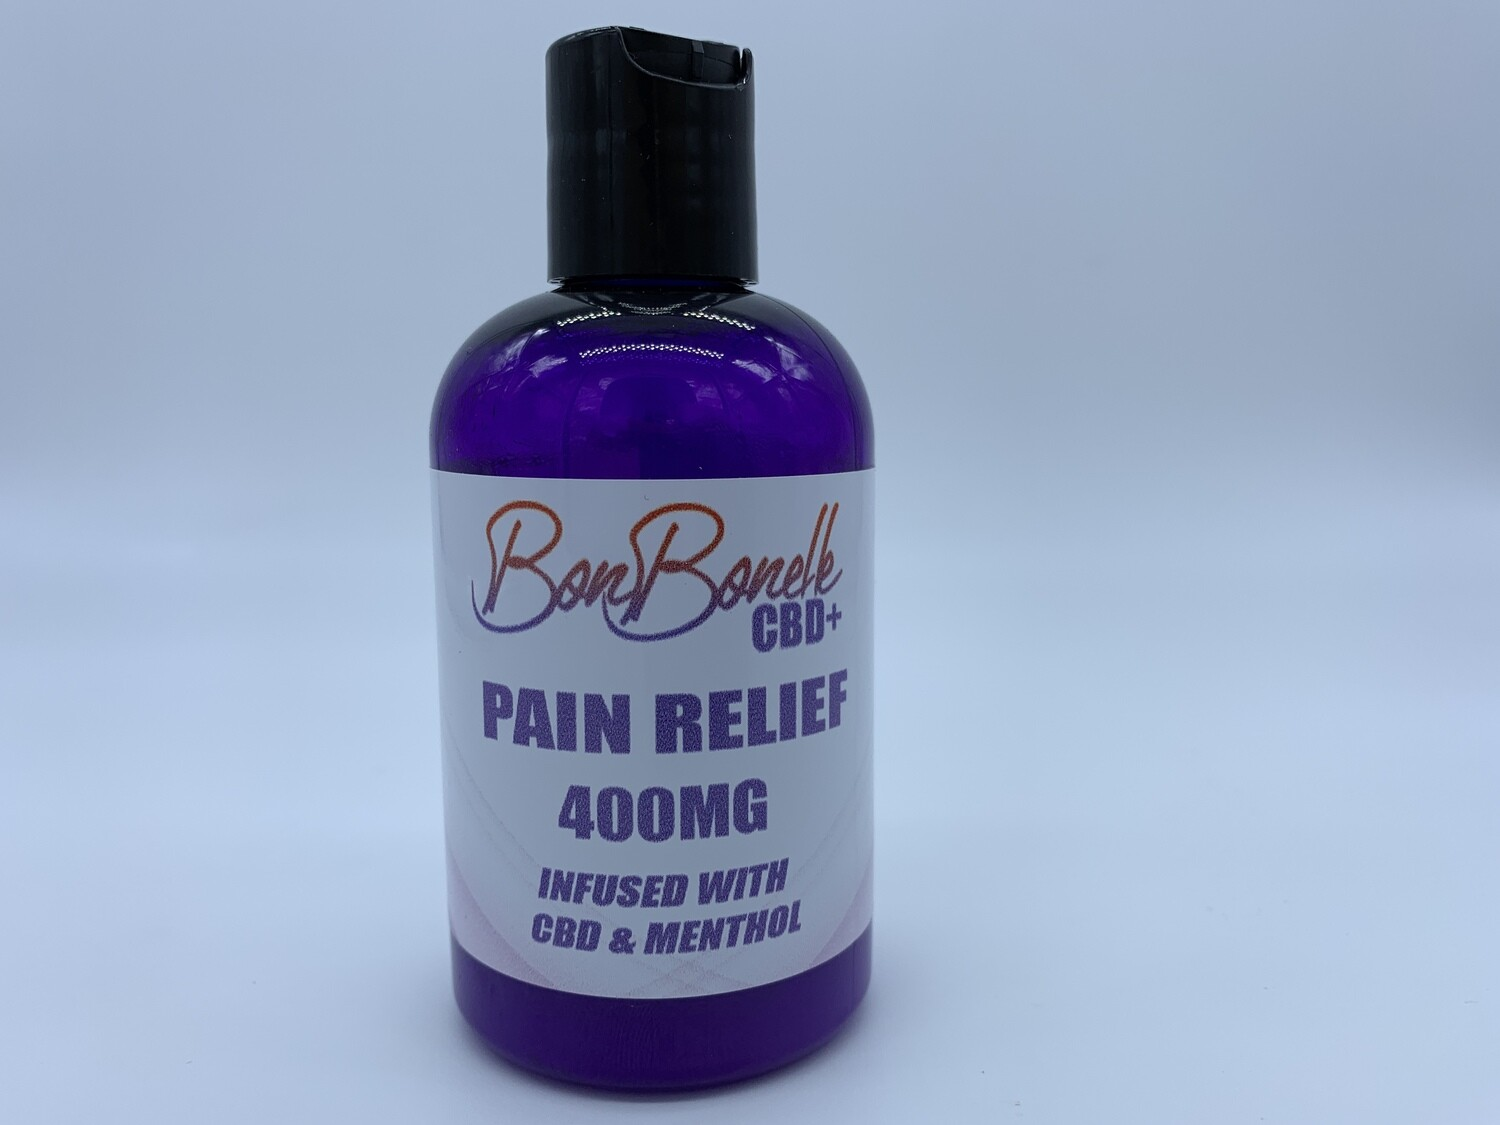 Bonbonelle 400mg CBD Pain Relief